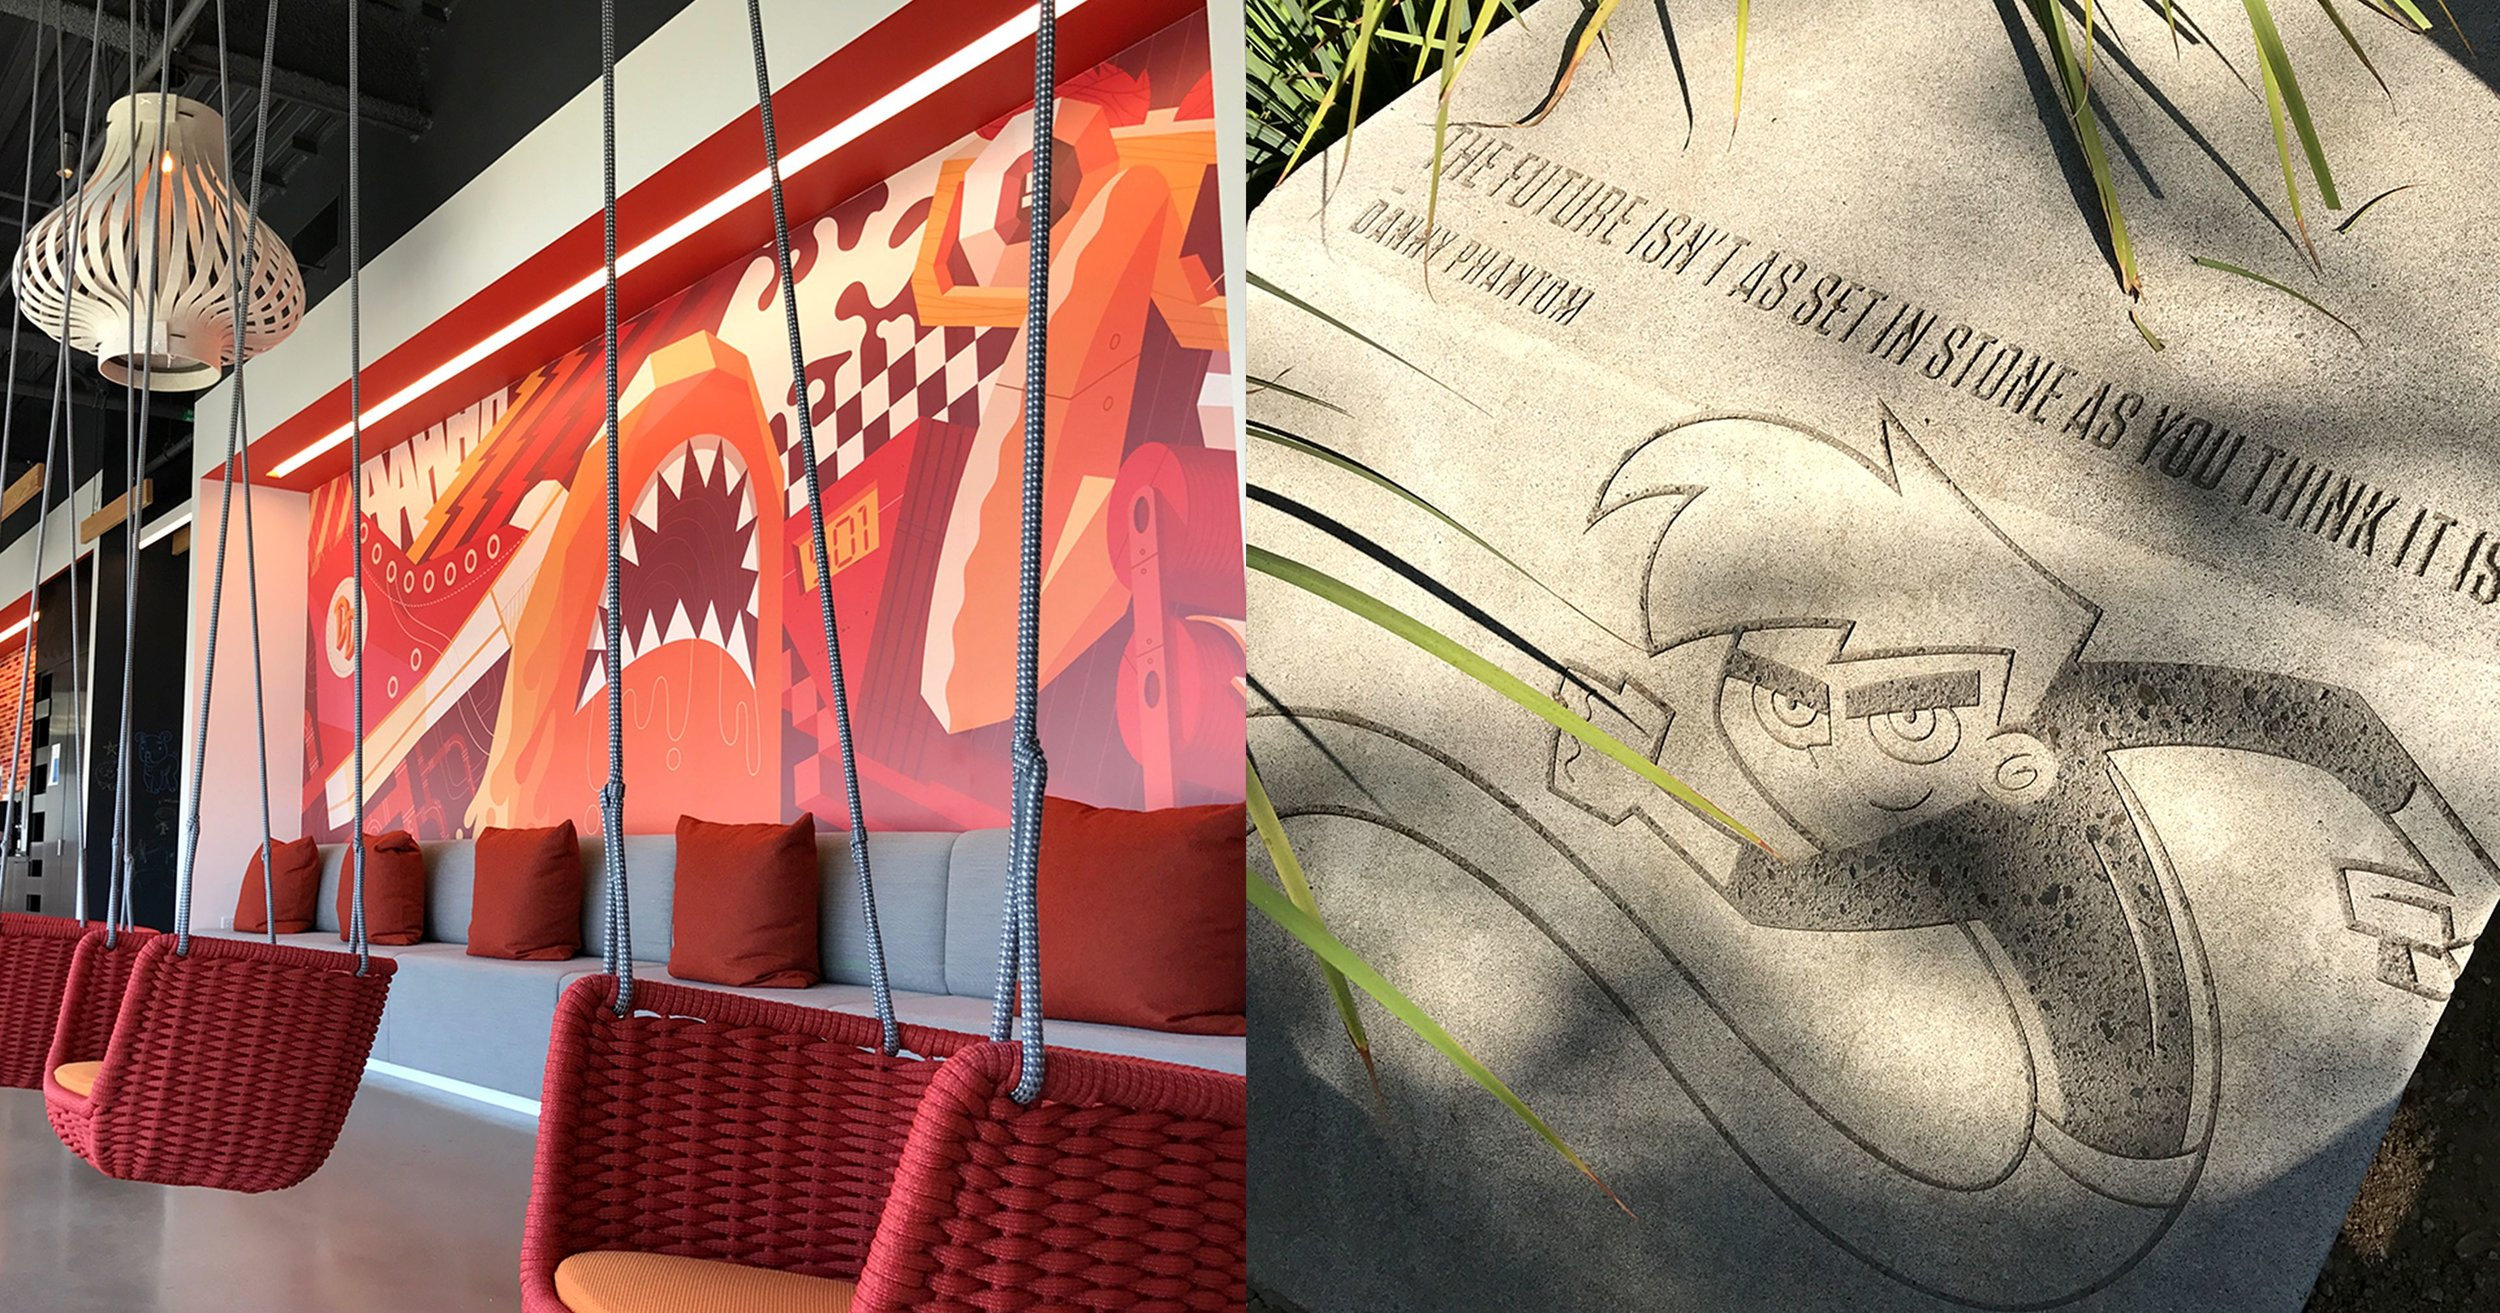 Room with hanging chairs and sidewalk with Danny Phantom quote.